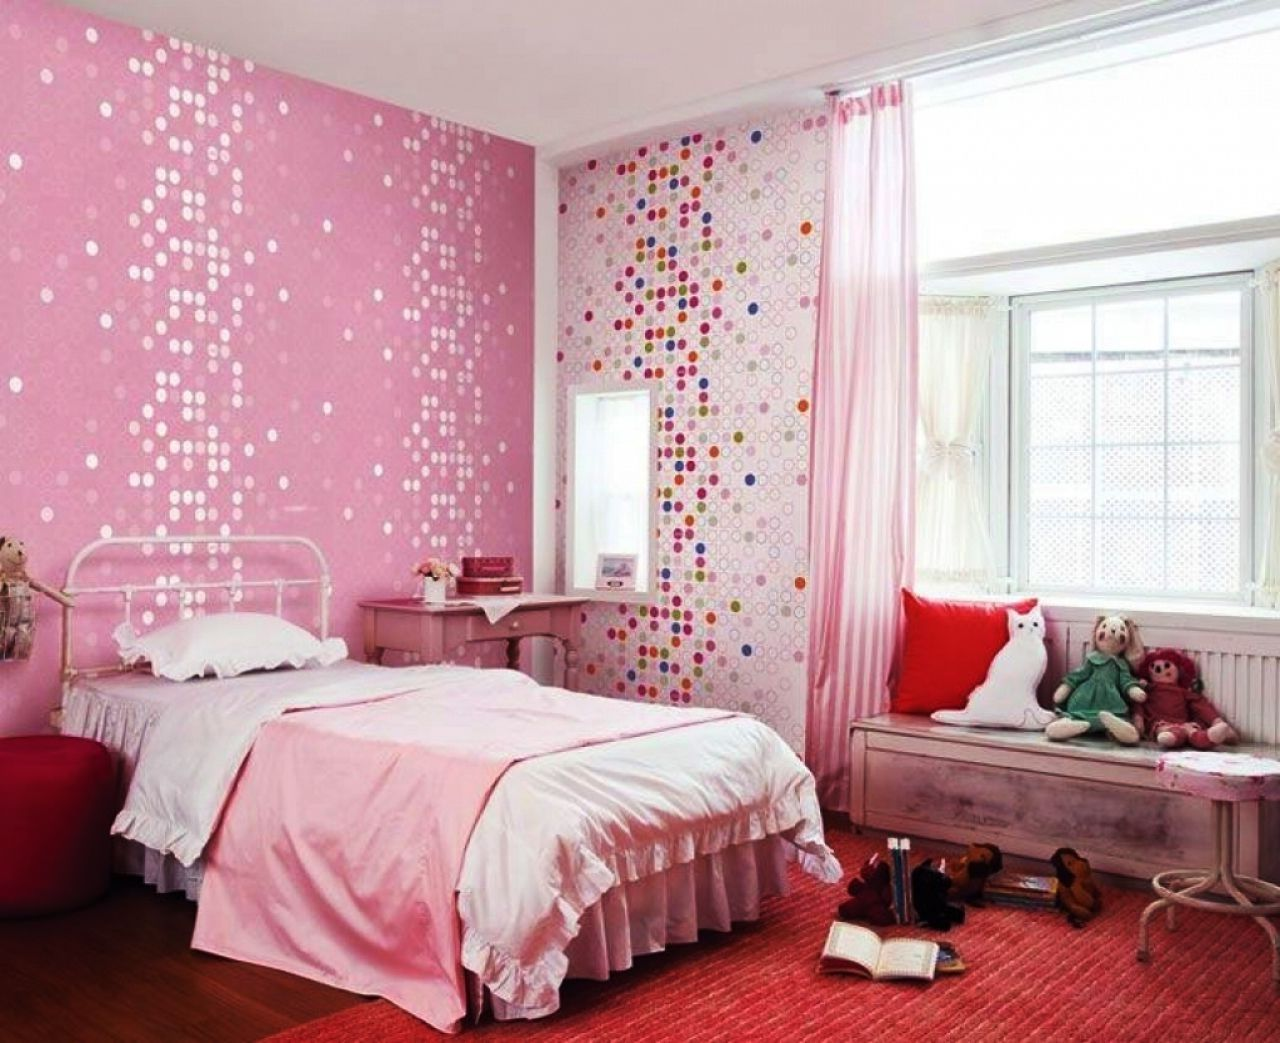 tag: pink bedroom ideas for little girl - home design inspiration